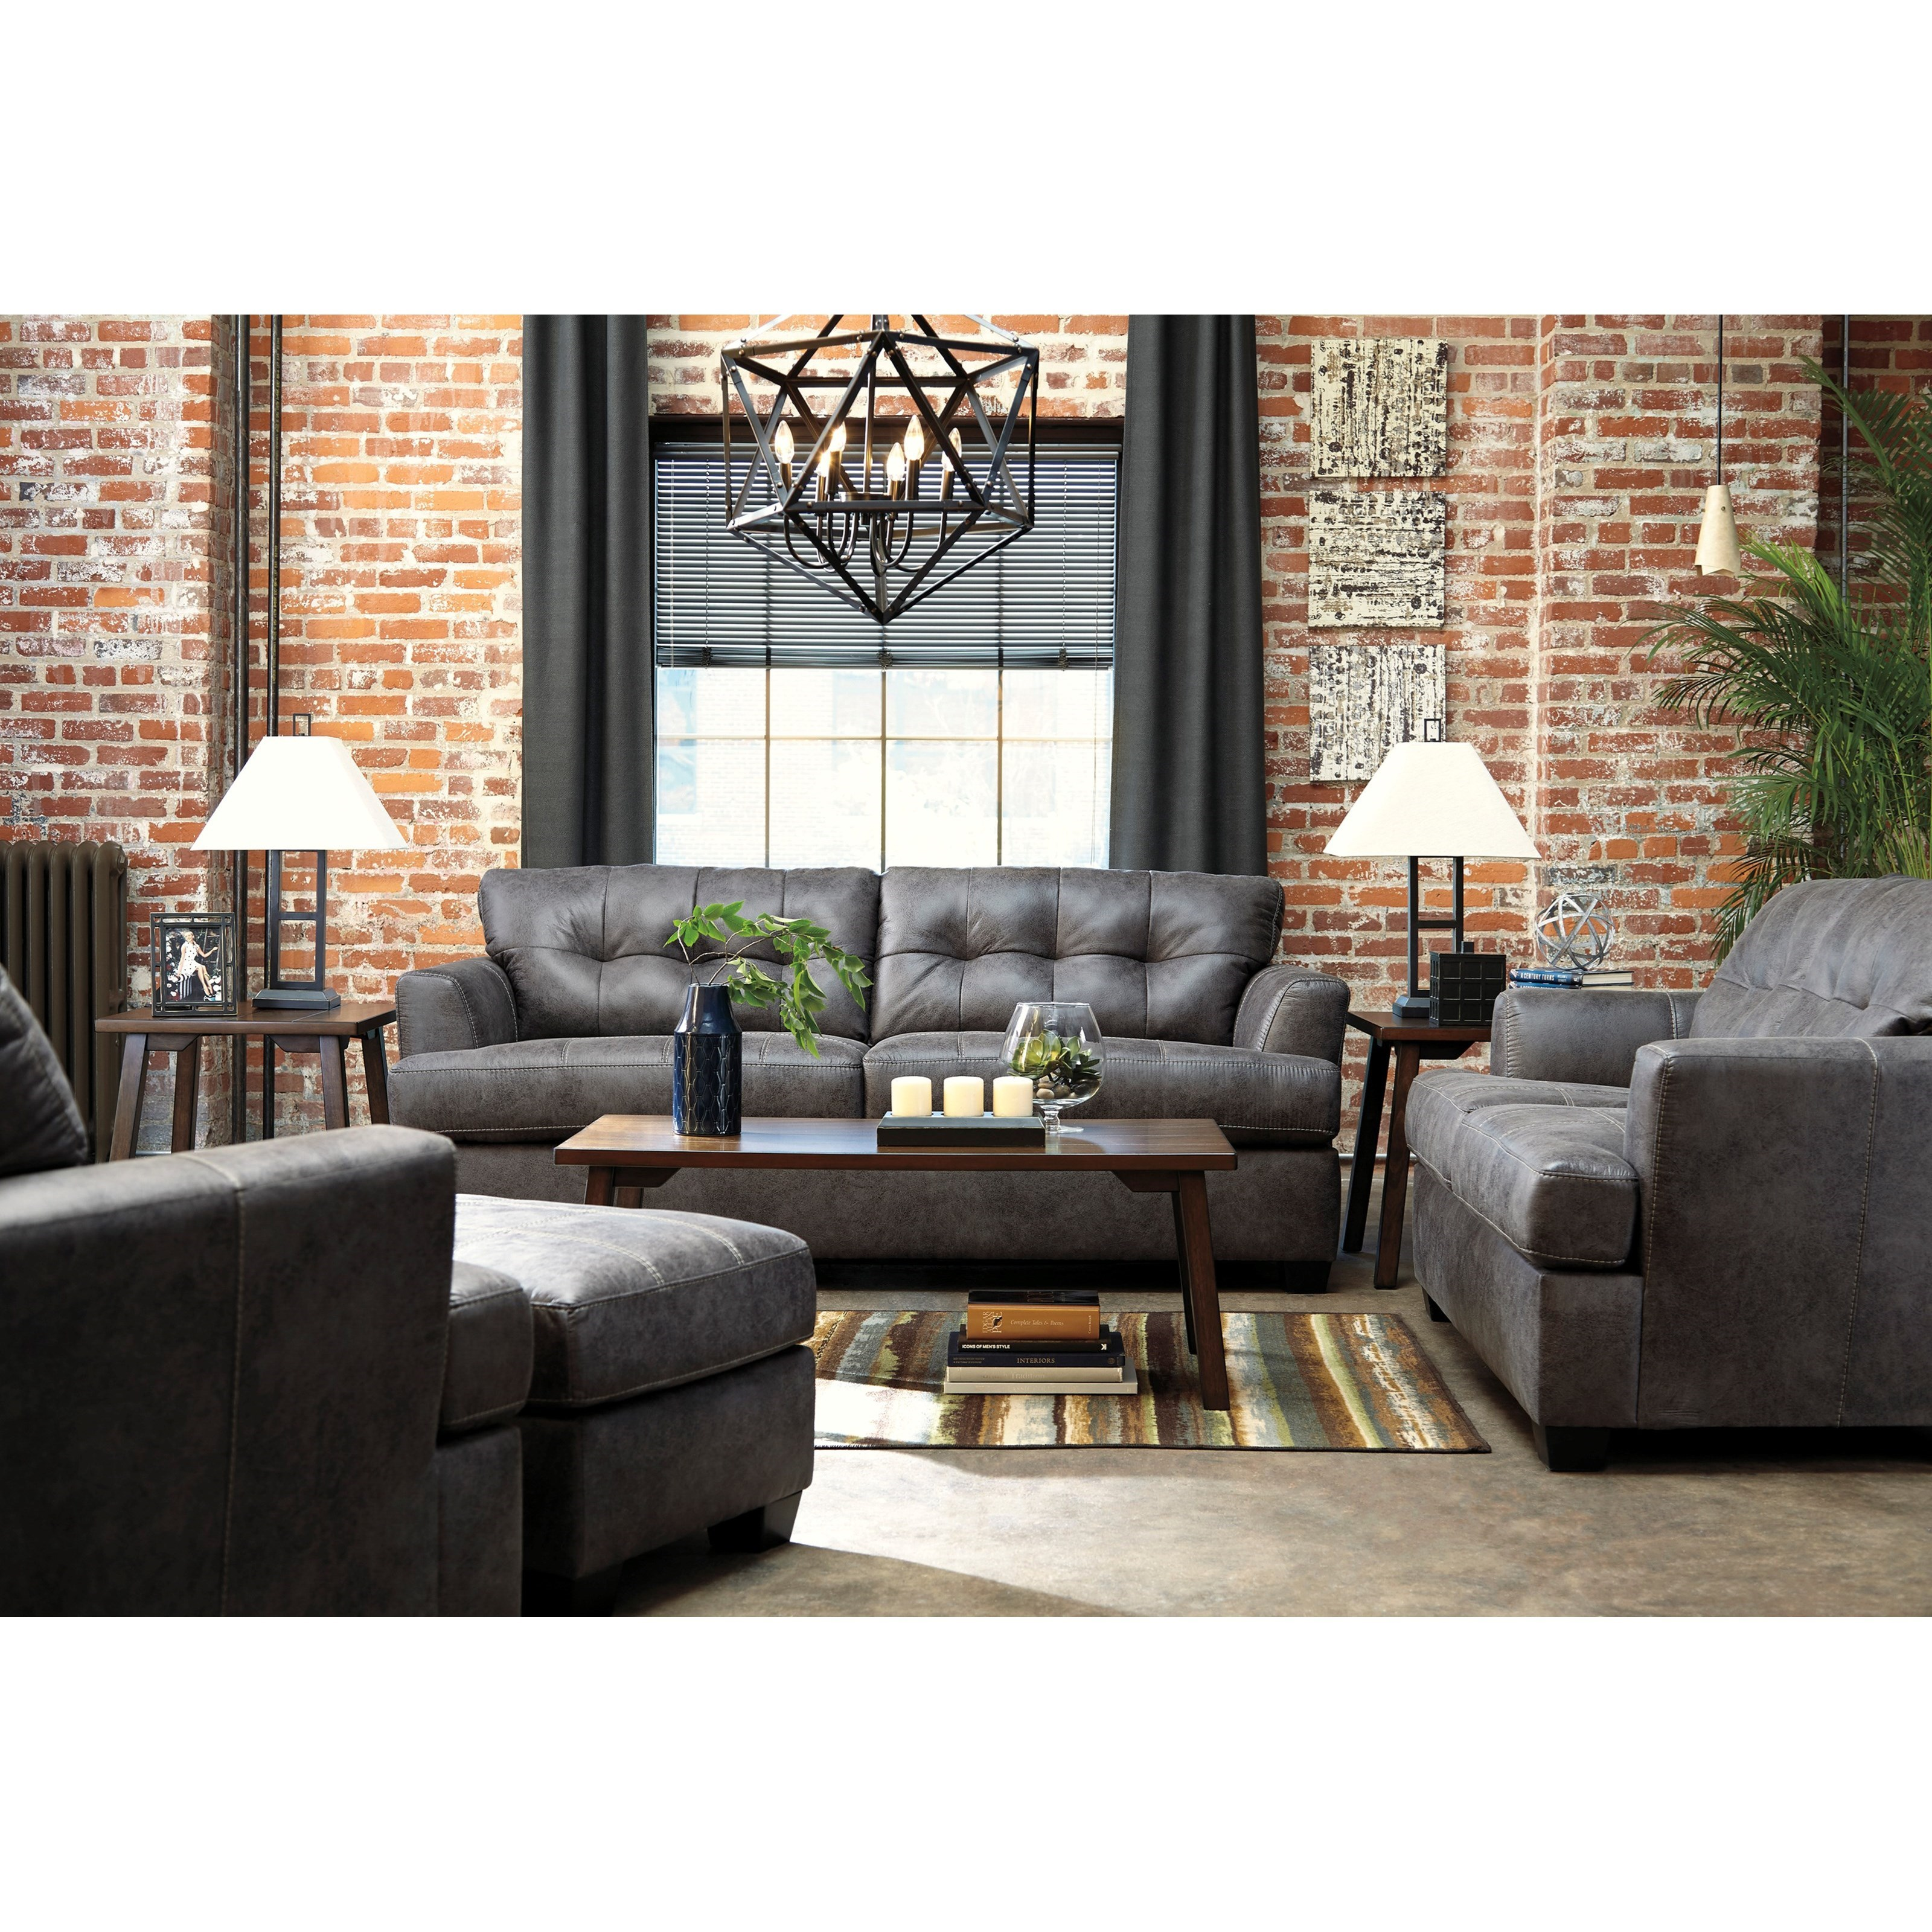 Benchcraft Inmon Stationary Living Room Group - Item Number: 65807 Living Room Group 2